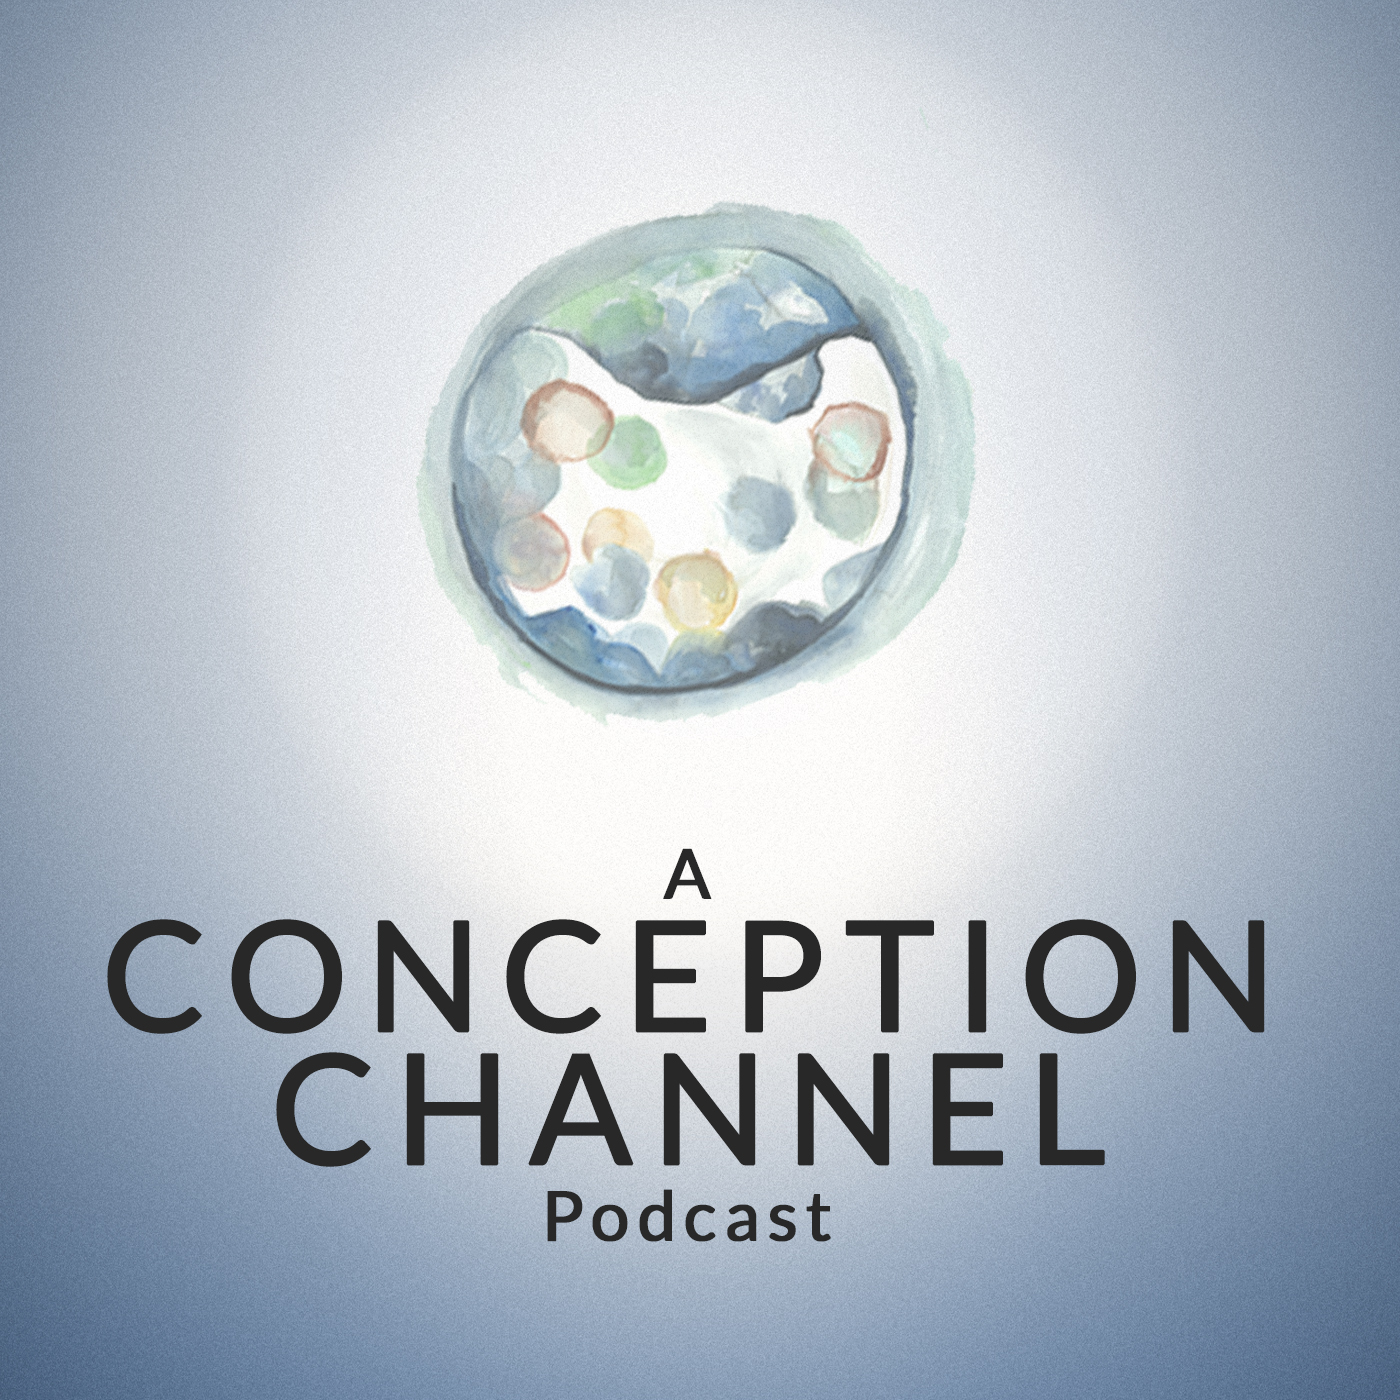 The Conception Channel Podcast show art